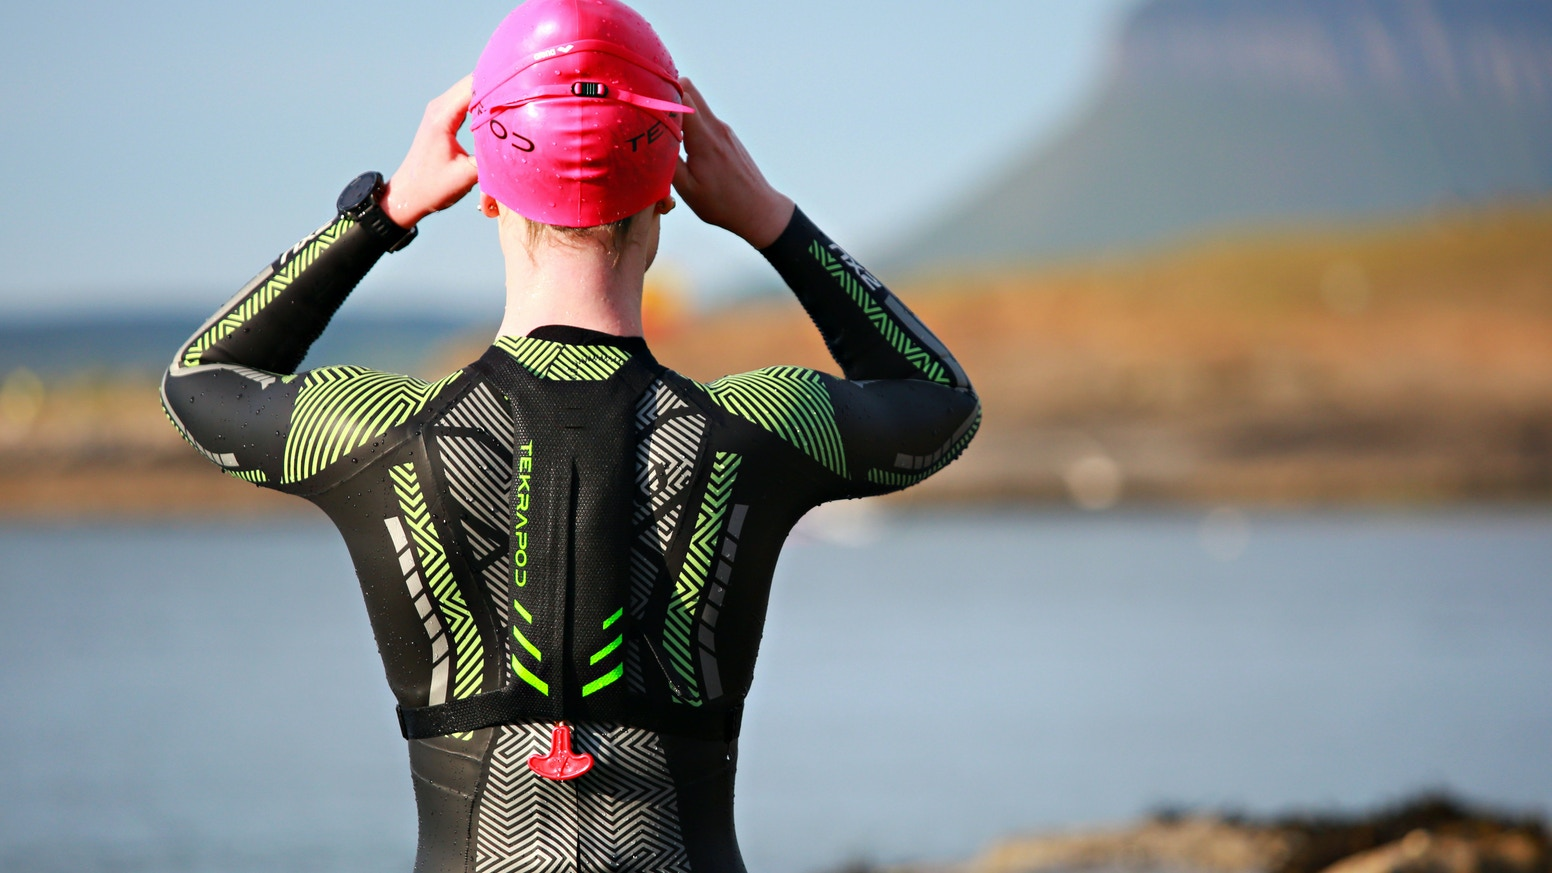 With patent-pending technology, Tekrapod is the first open-water safety device, designed specifically for open- water swimmers. Available to buy on our website below!